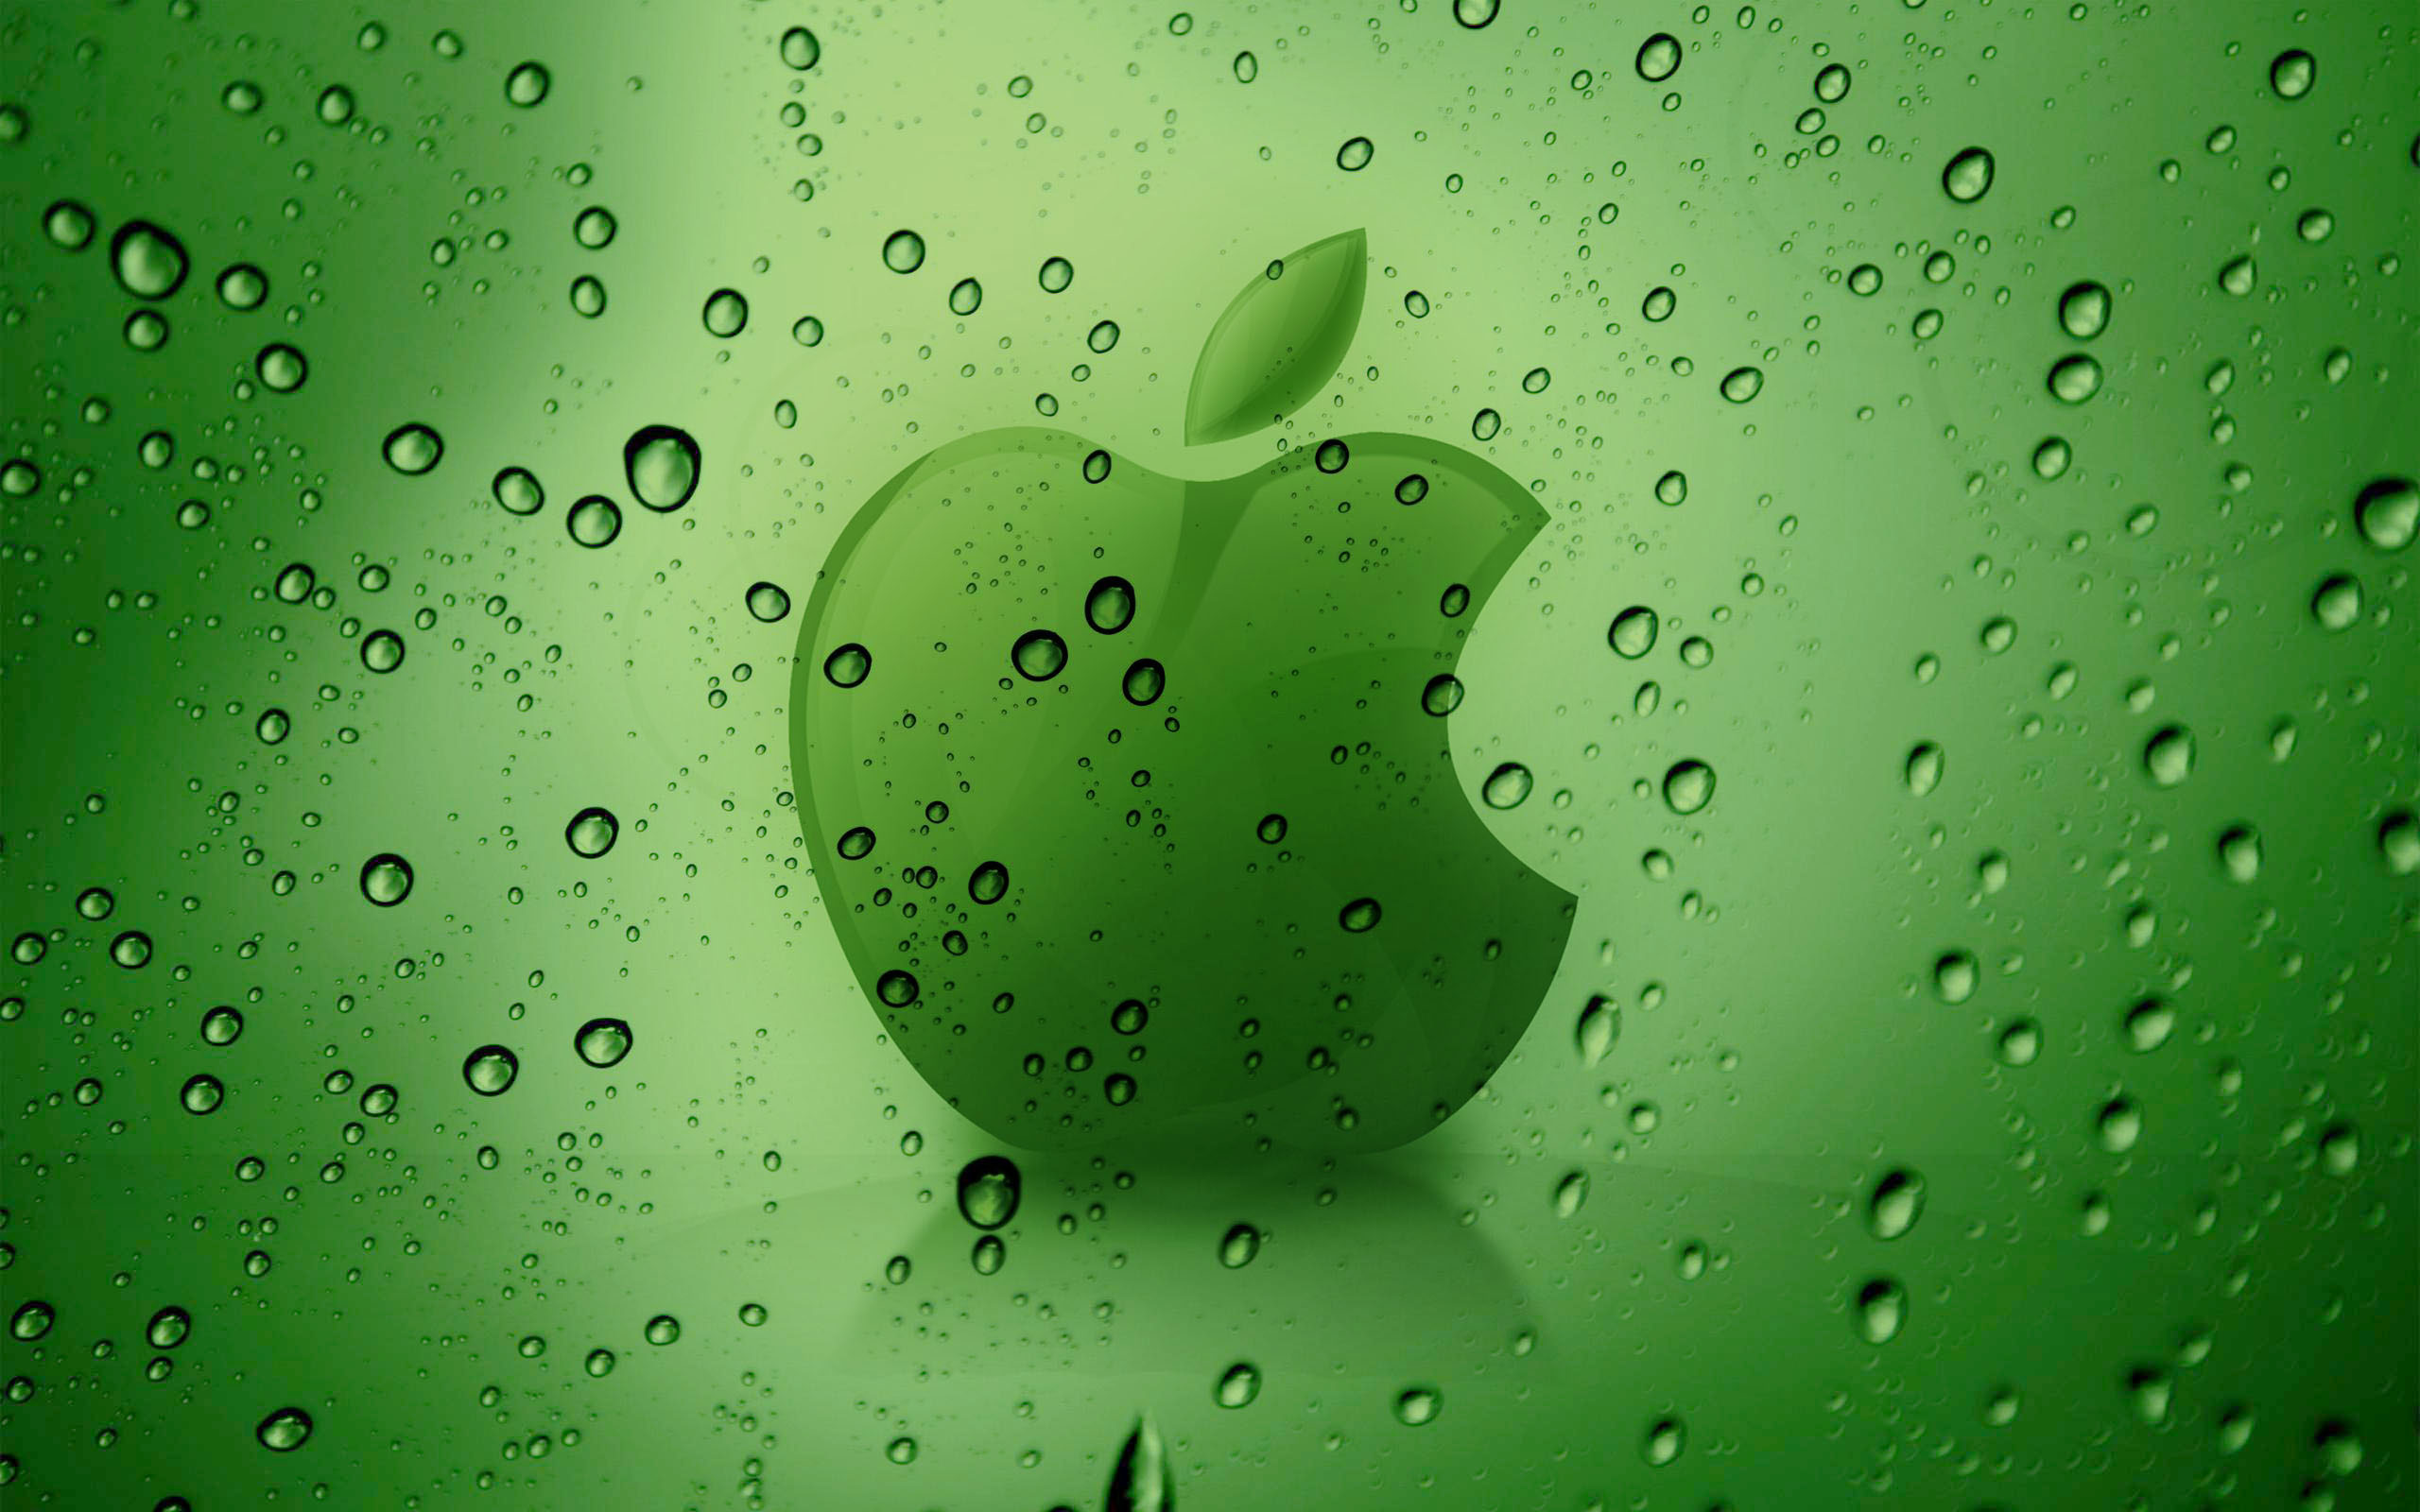 Fresh Dew apple desktop pictures wallpaper High Quality 2560x1600